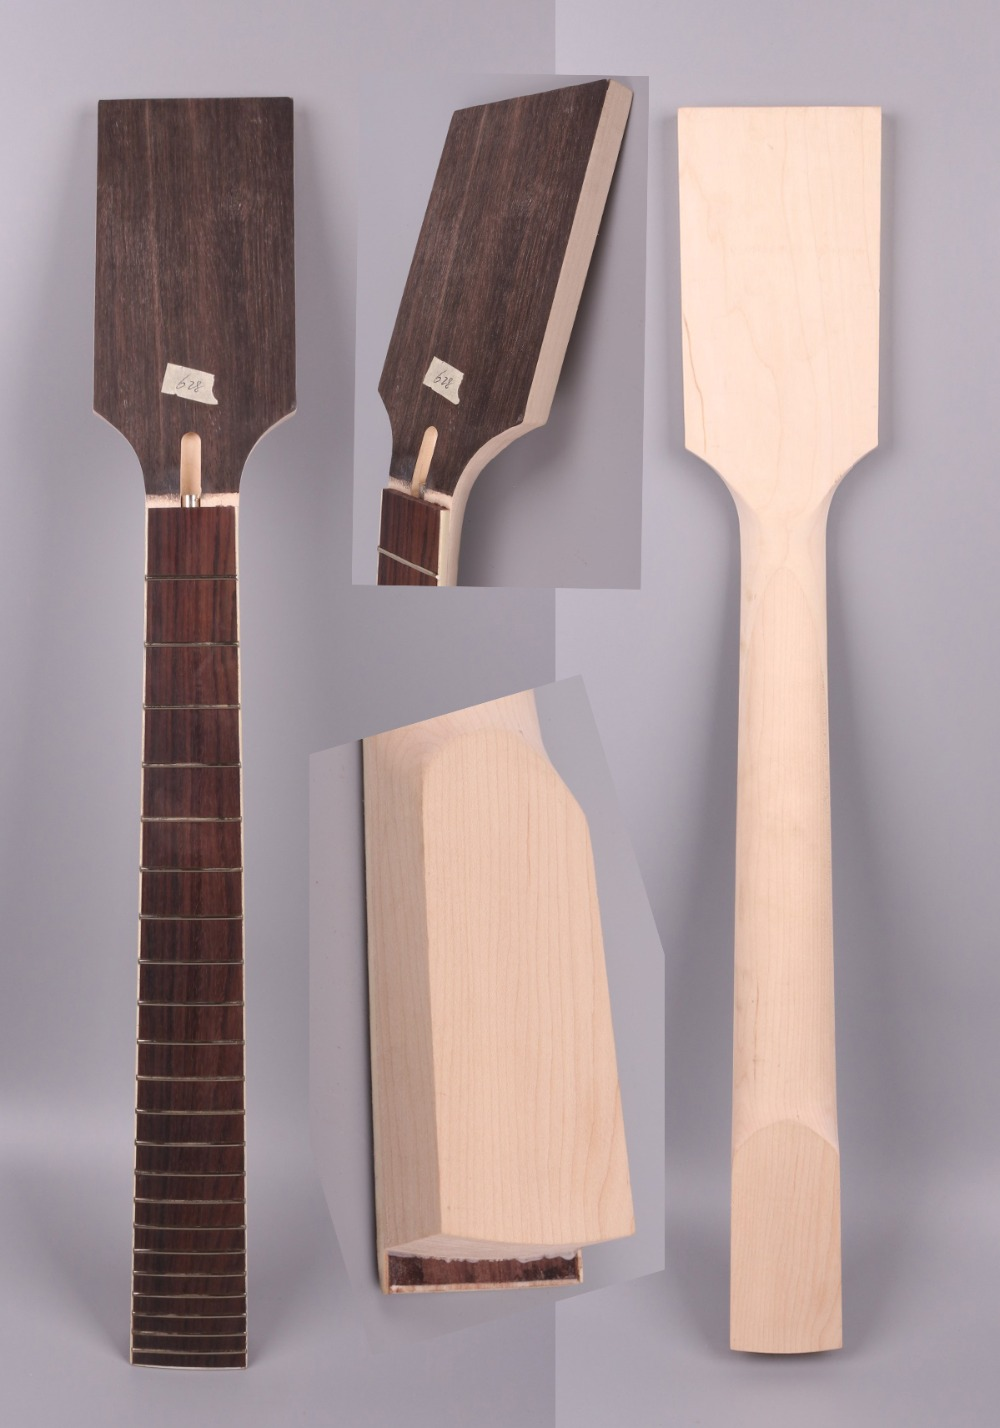 Yinfente 7 string electric guitar neck replacement 22 fret Paddle head maple rosewood fretboard guitar maker 25.5 inch